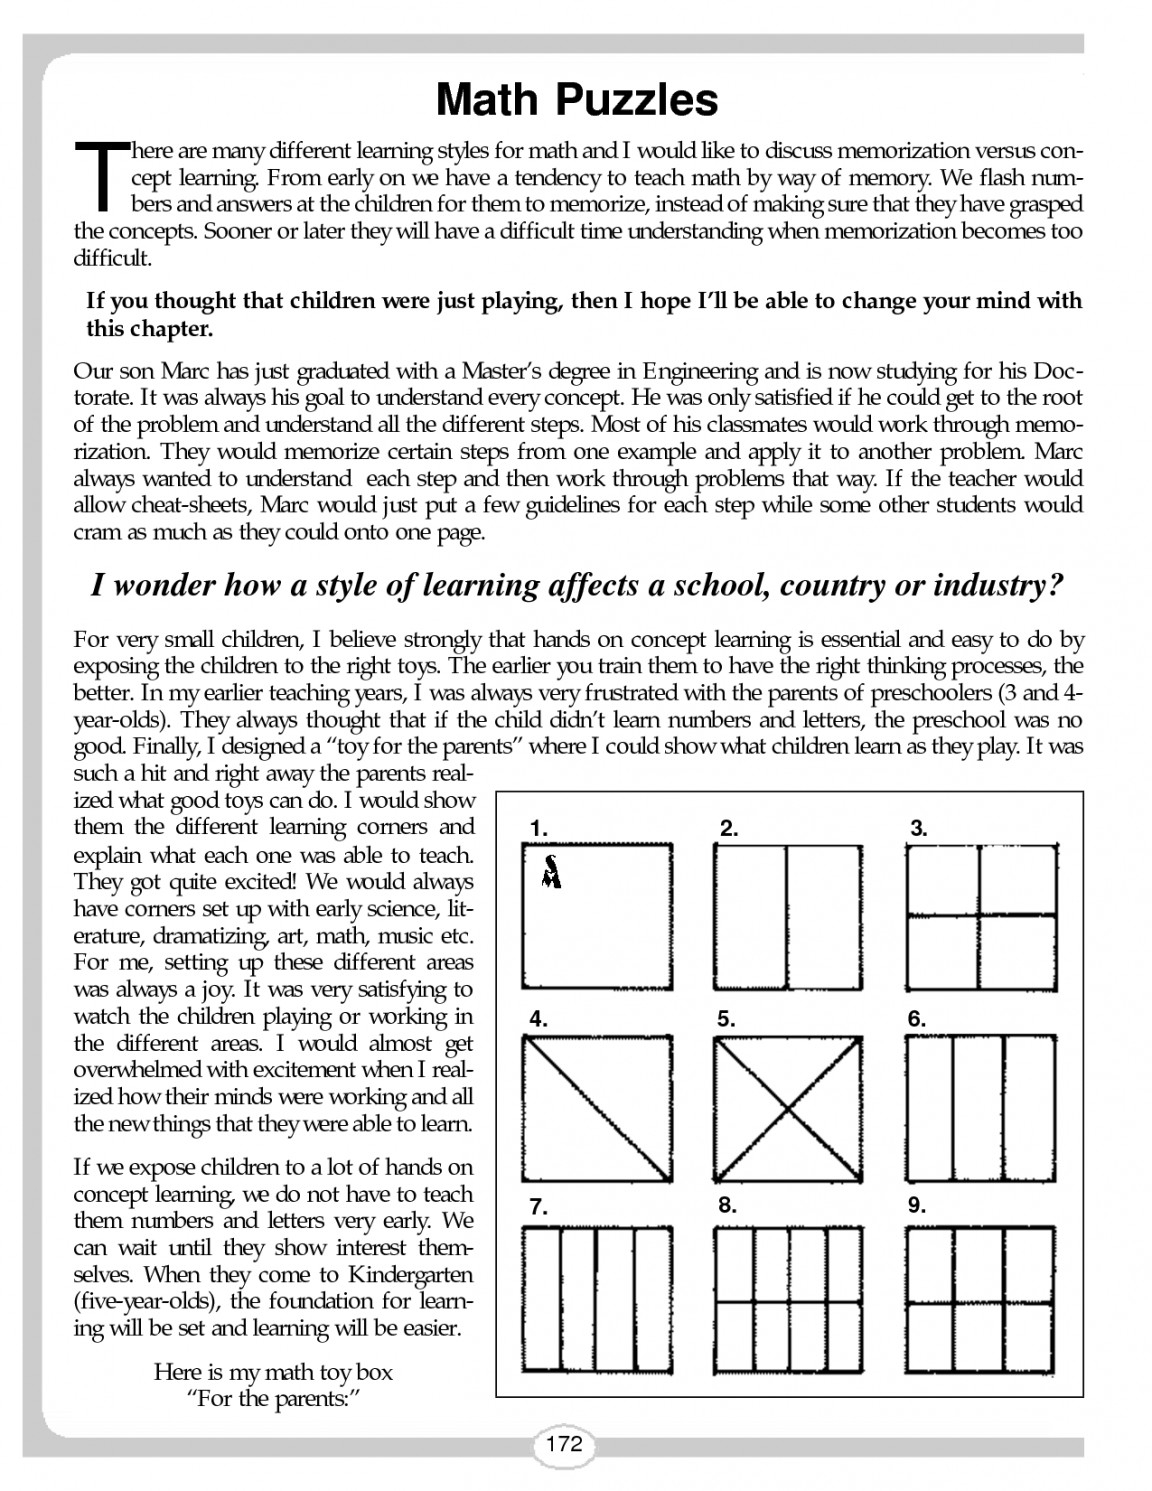 Printable Logic Puzzles For Middle School New Crossword Thanksgiving - Printable Logic Puzzles For High School